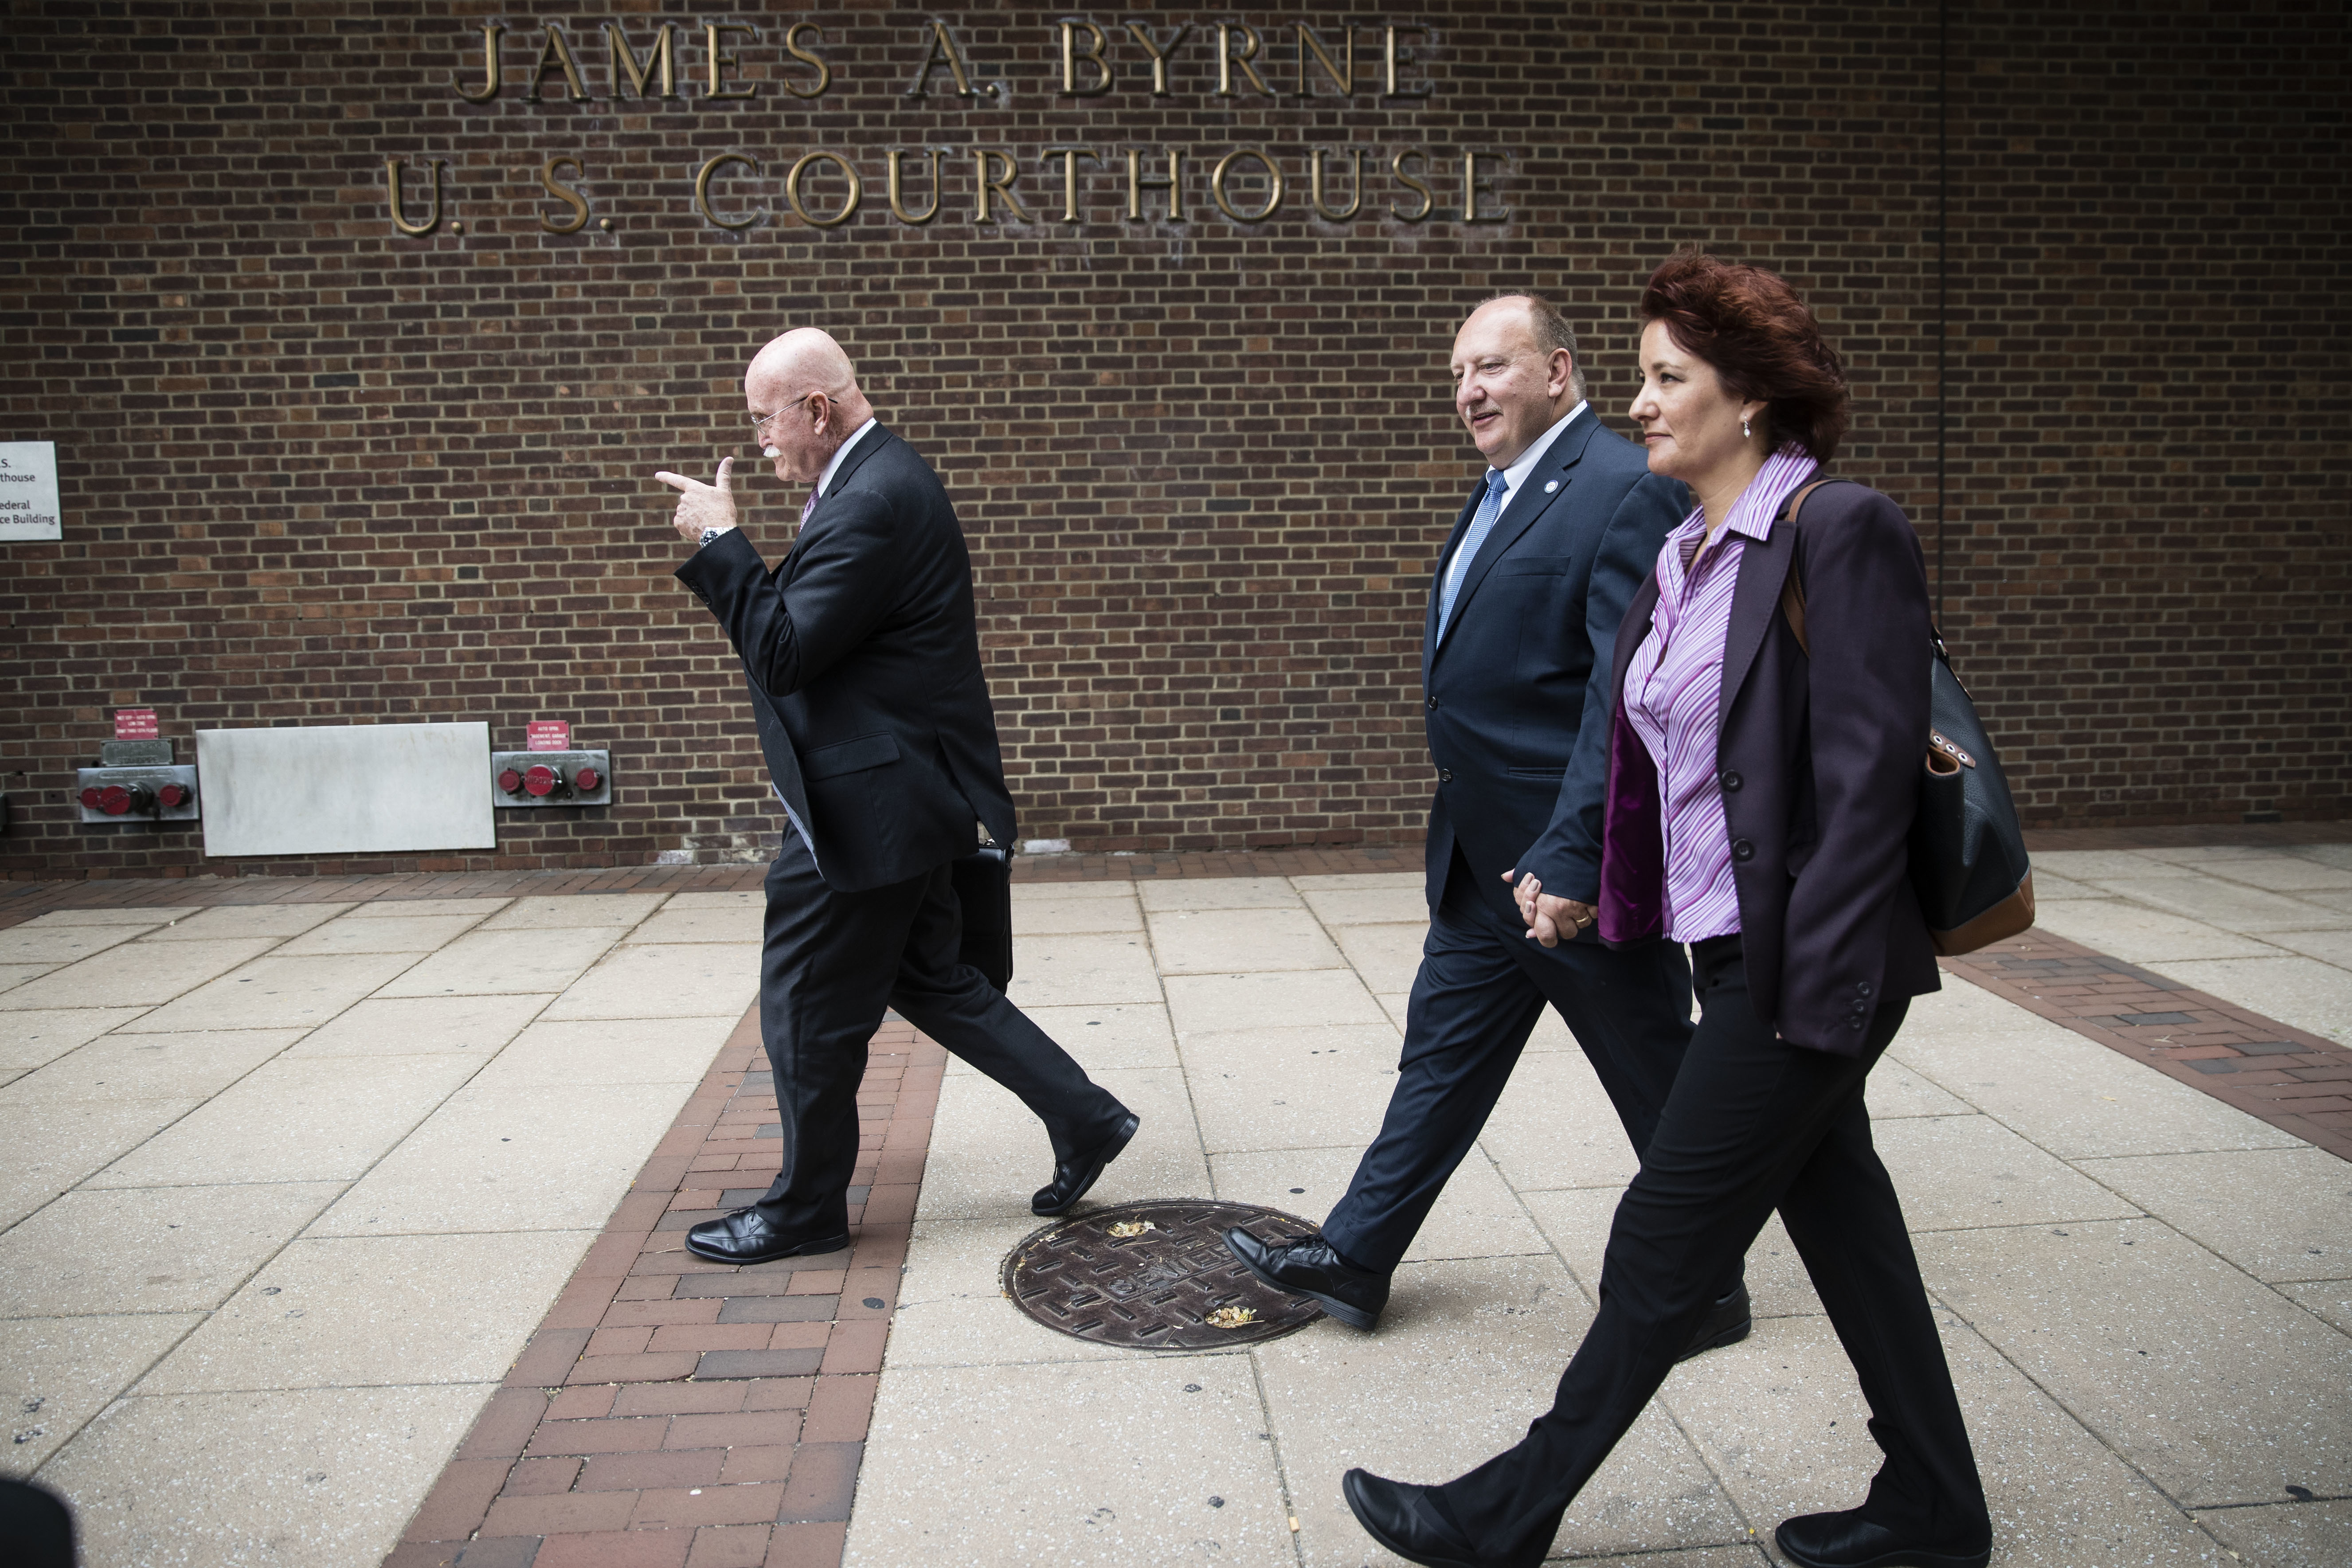 Allentown Mayor Ed Pawlowski, center, accompanied by his wife Lisa and lawyer Jack McMahon walk by the U.S. Courthouse in Philadelphia on July 27, 2017.